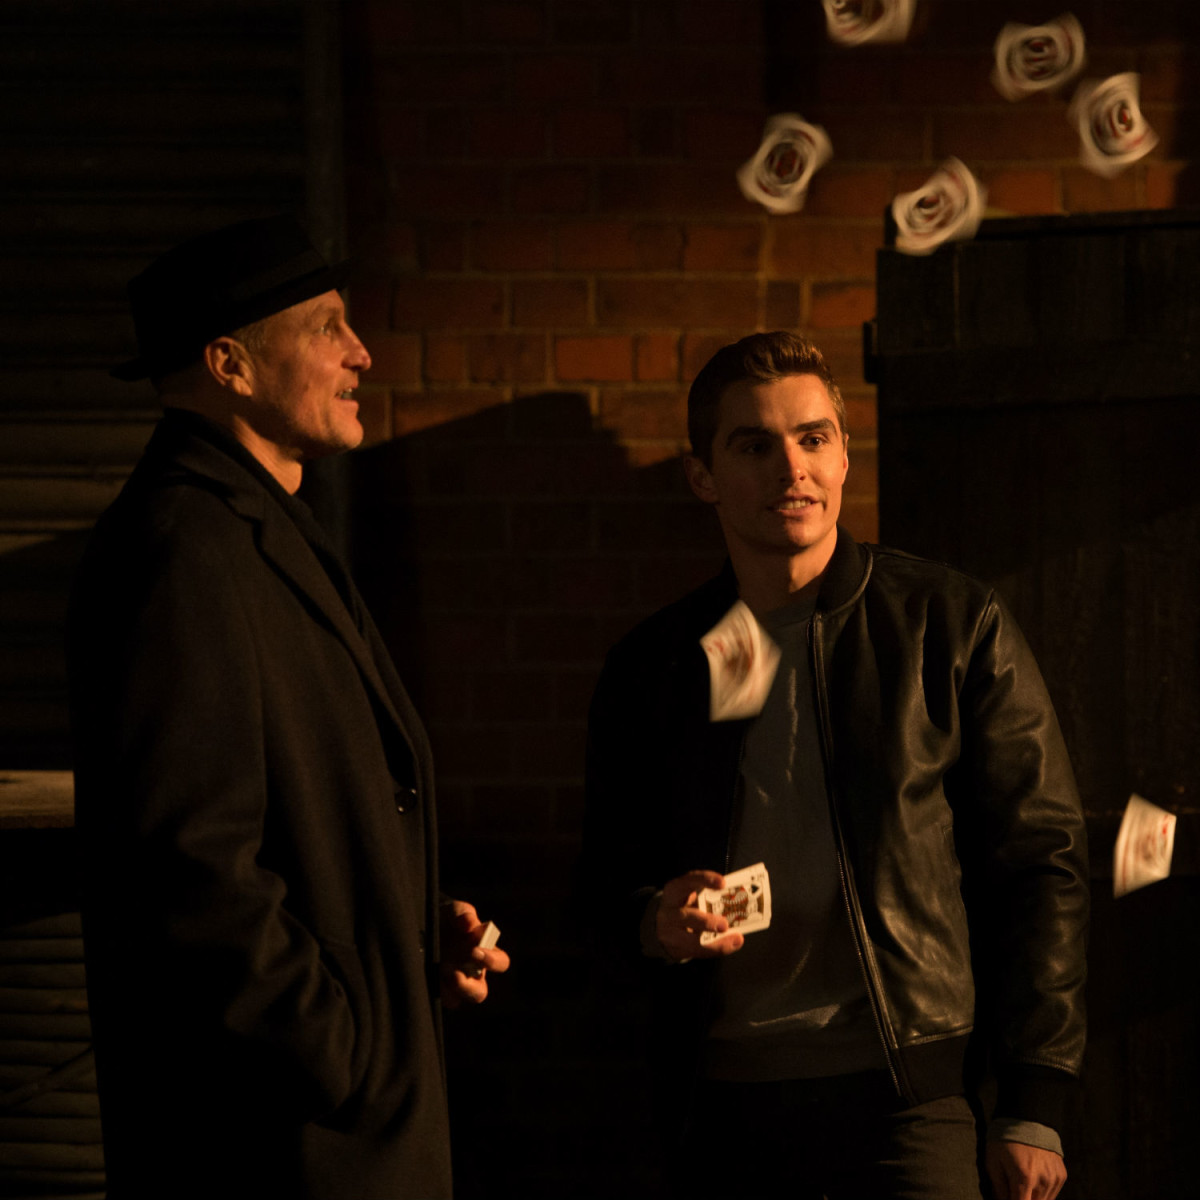 Woody Harrelson and Dave Franco in Now You See Me 2